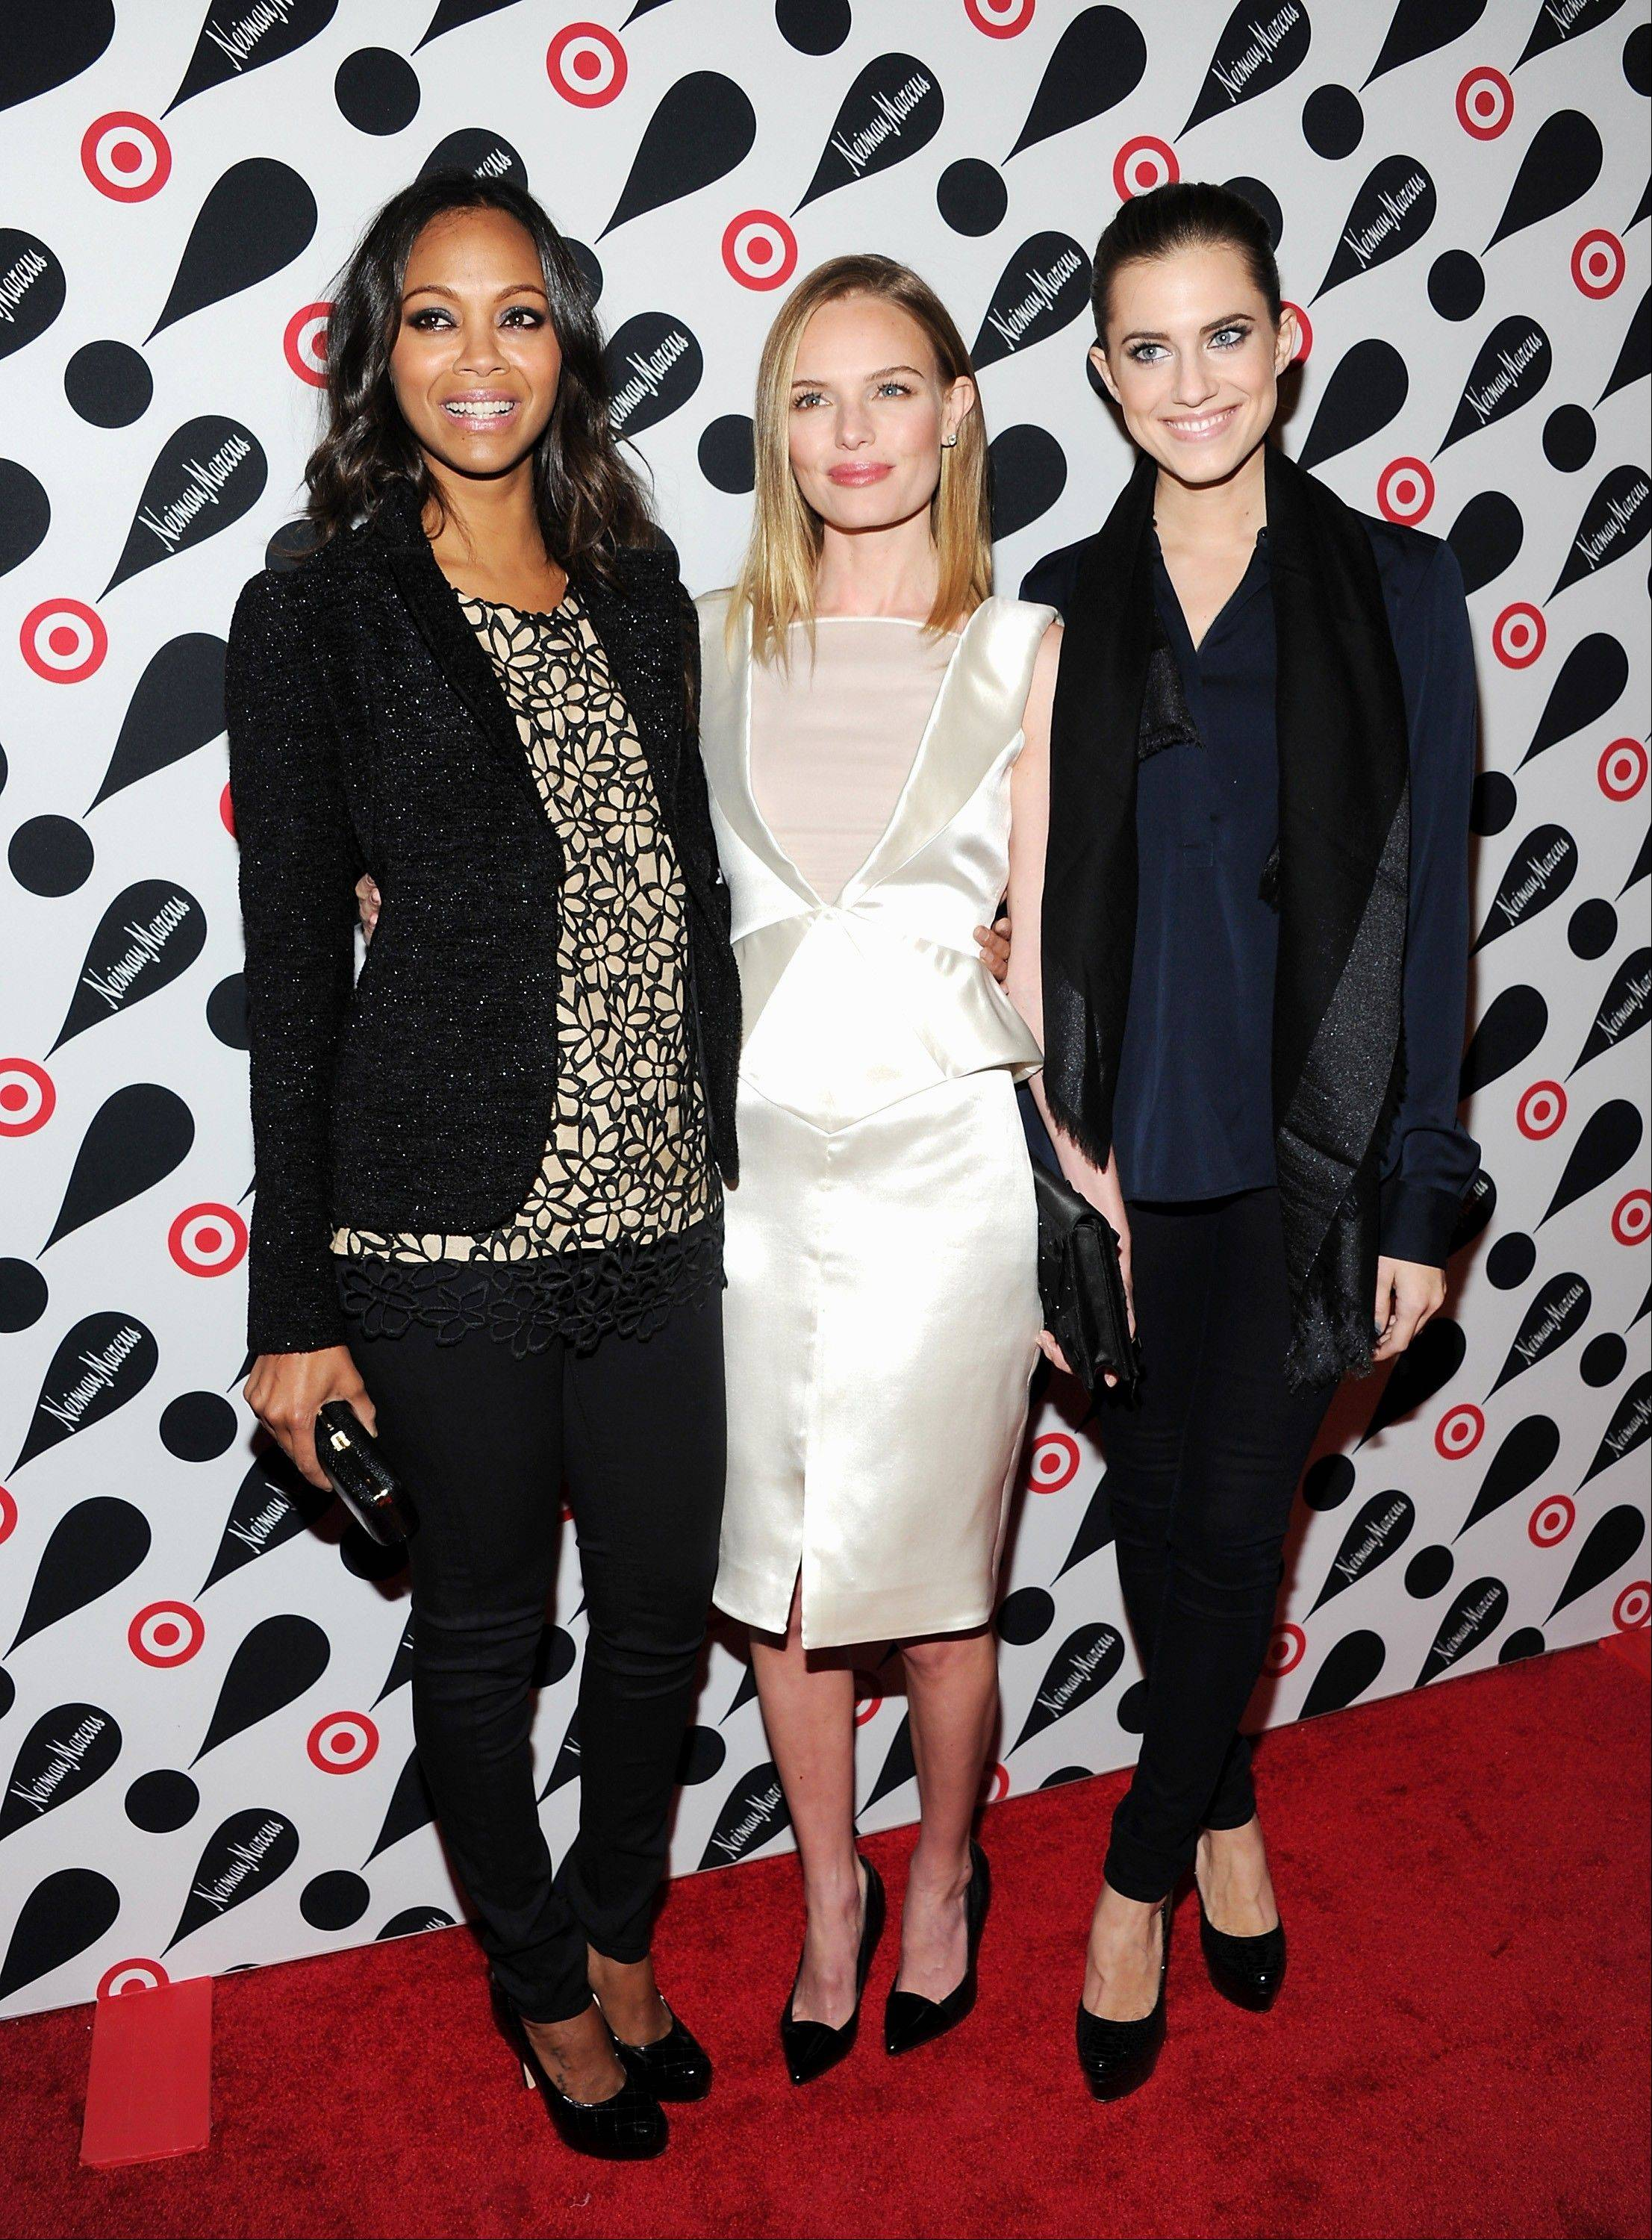 Actresses Zoe Saldana, from left, Kate Bosworth and Allison Williams attend the Target and Neiman Marcus holiday collection launch in New York.